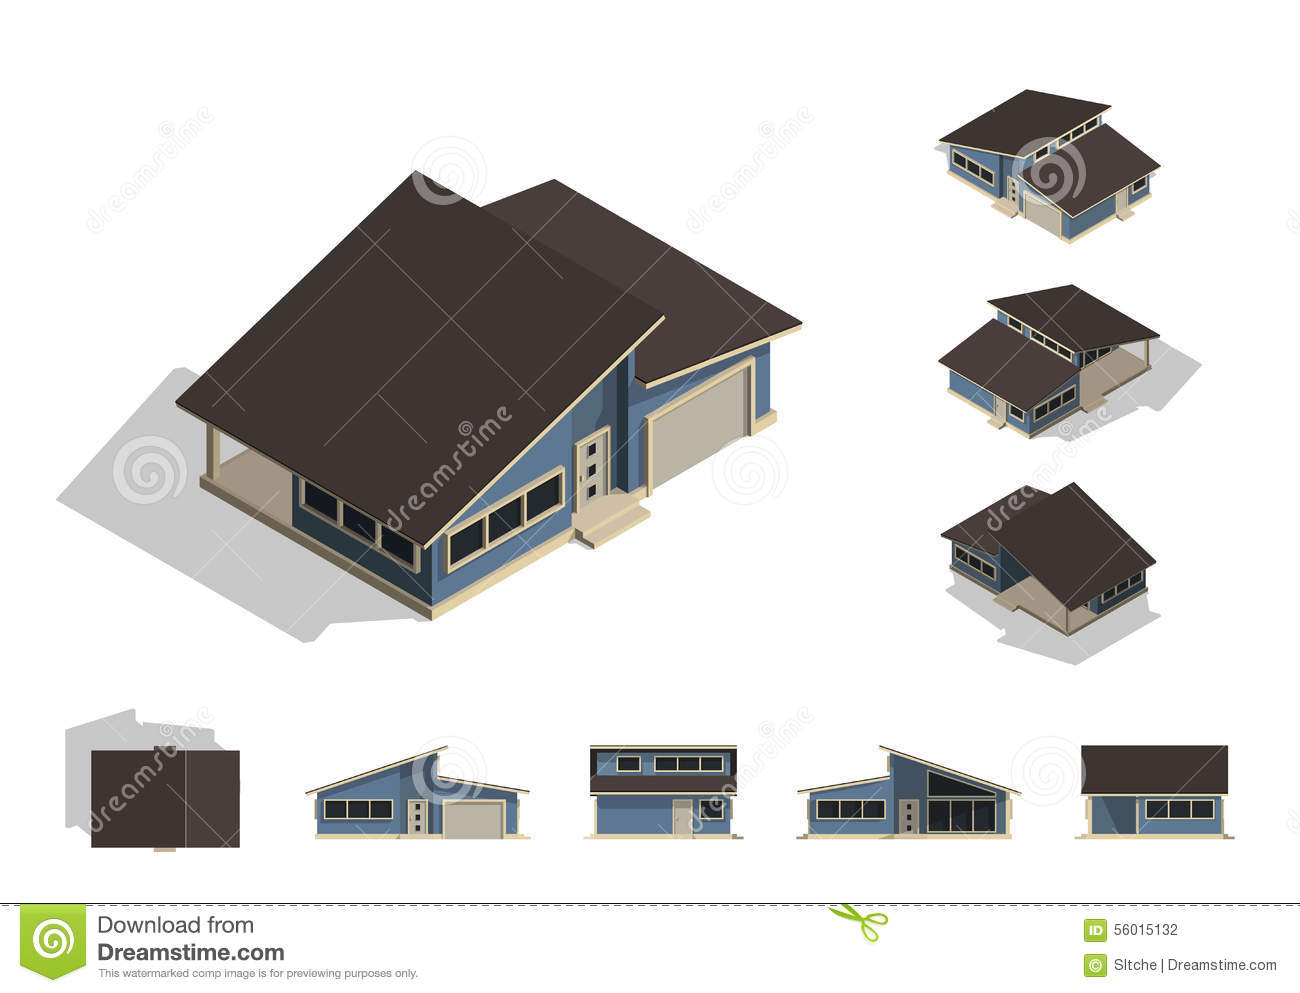 house side view clipart - photo #17